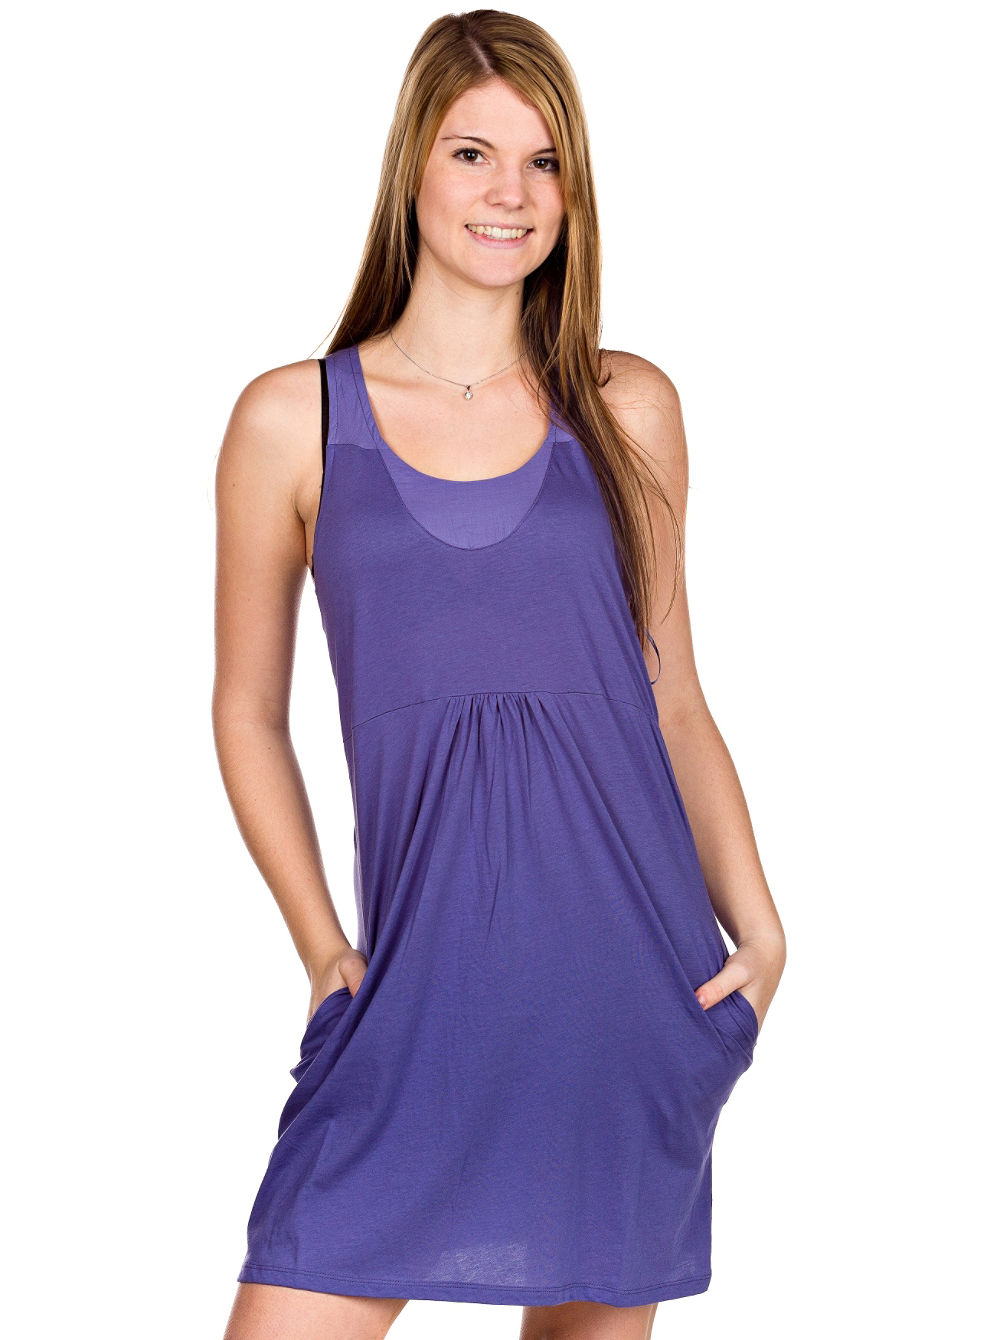 Misty Muse Dress Women